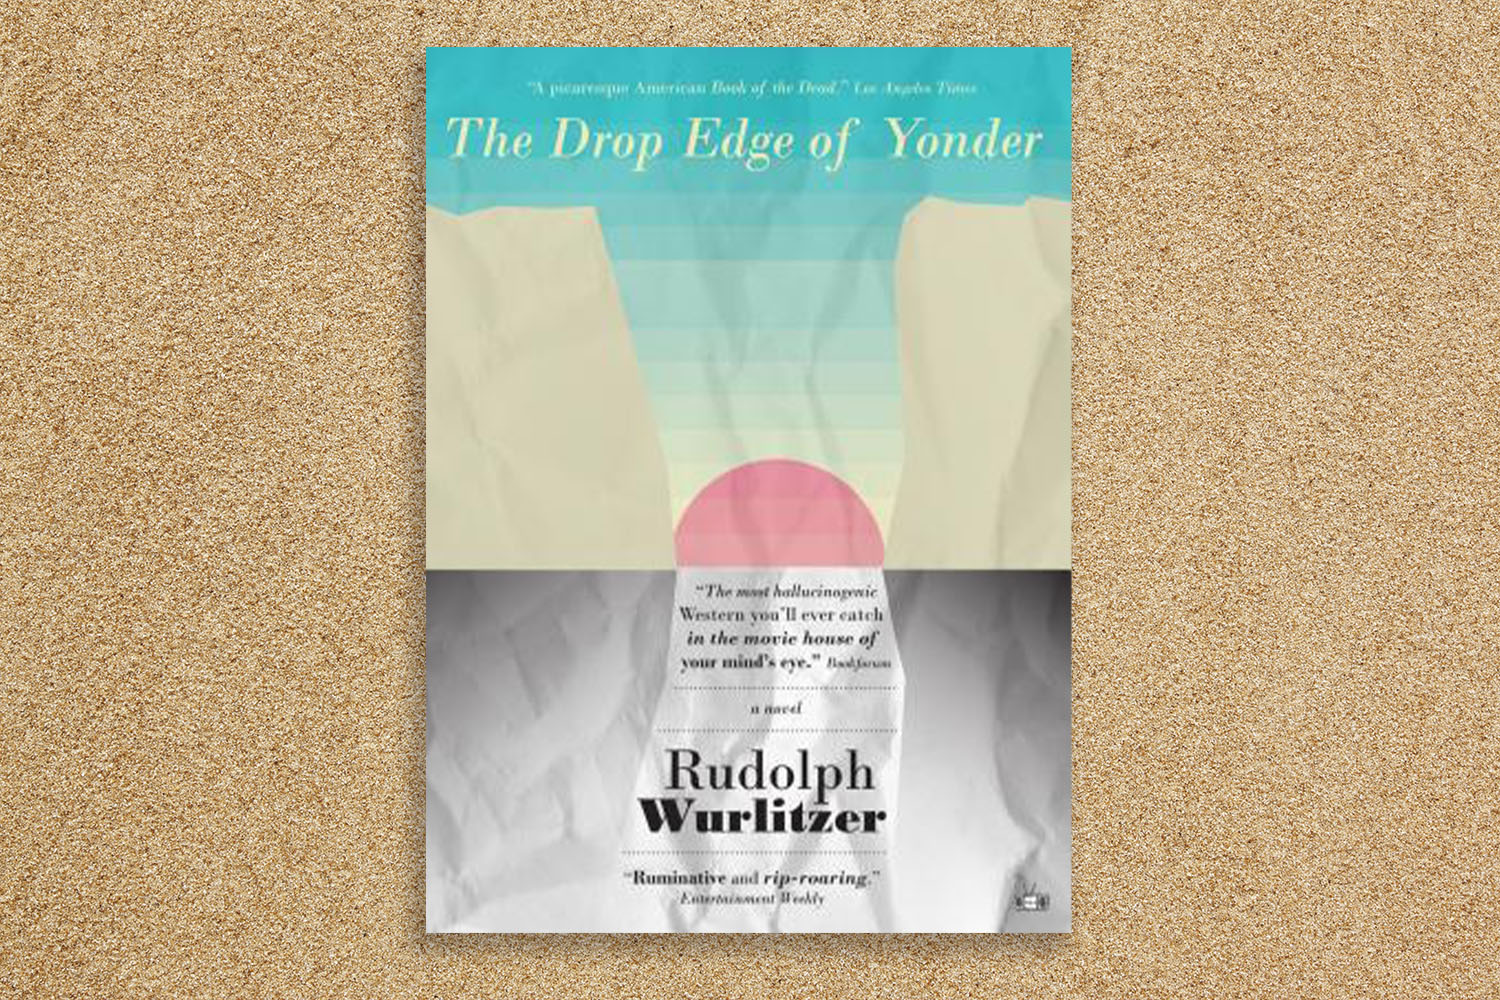 The Drop Edge of Yonder cover.